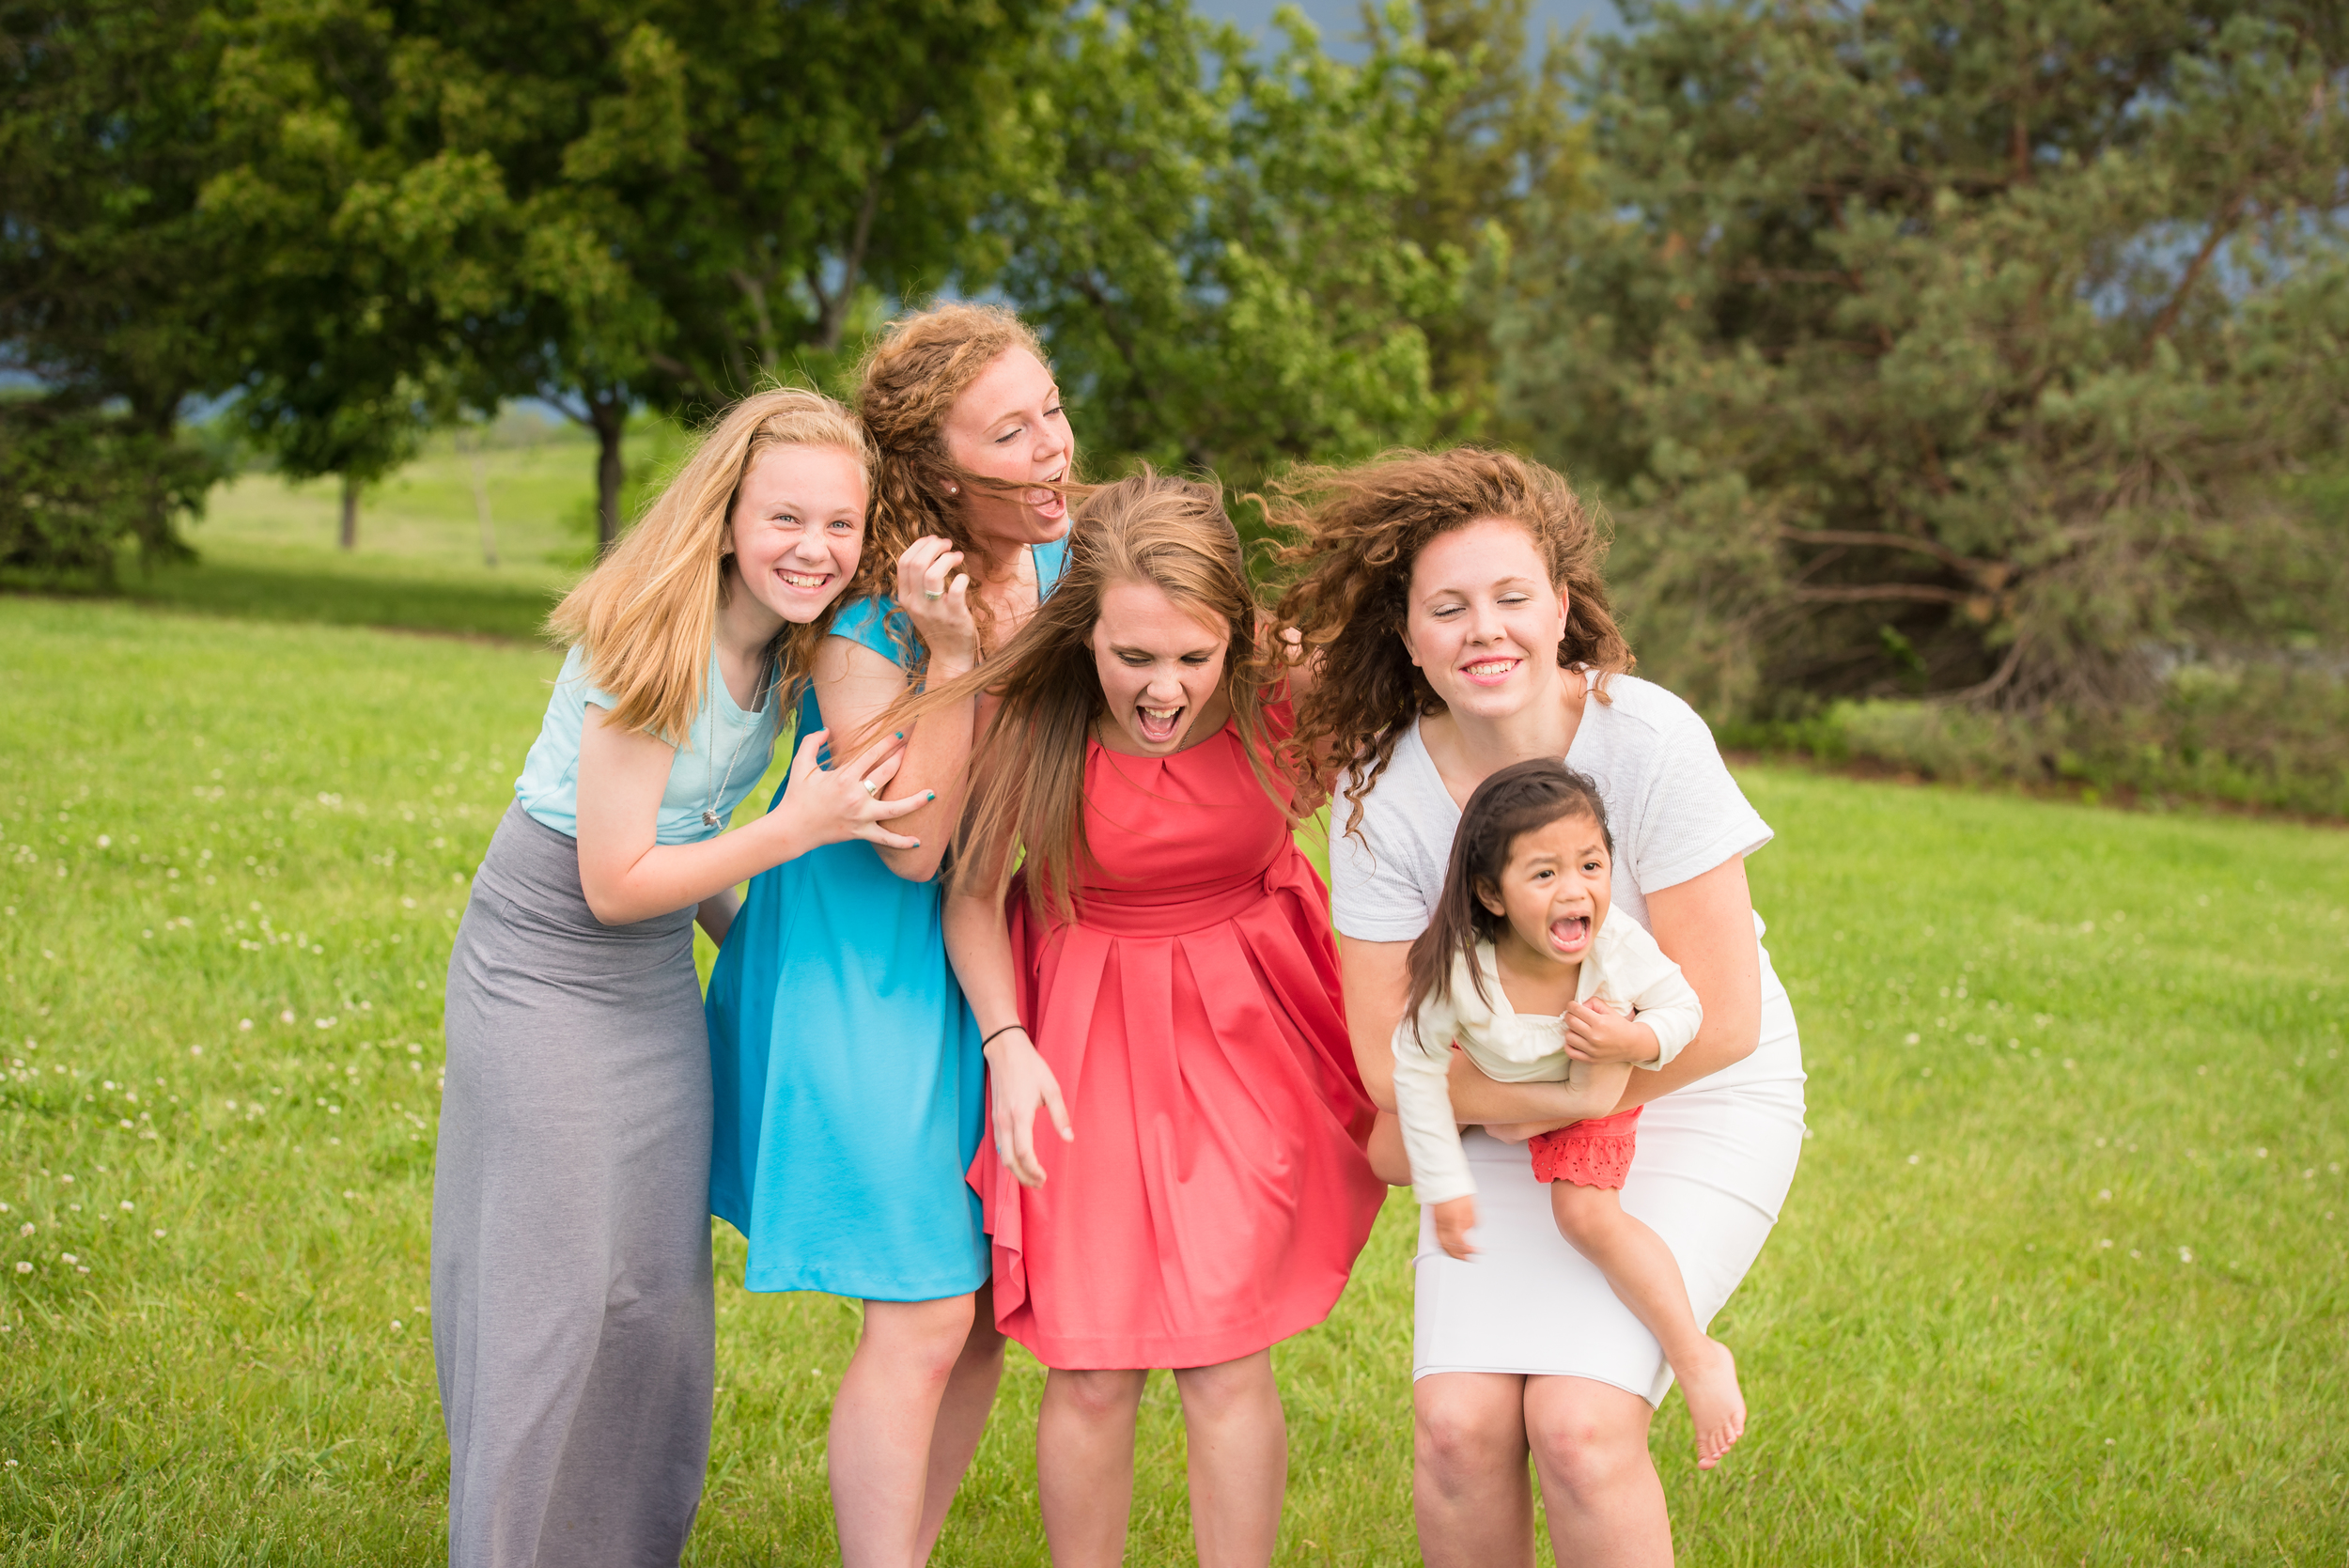 Vanderhorst Family Shoot33.jpg